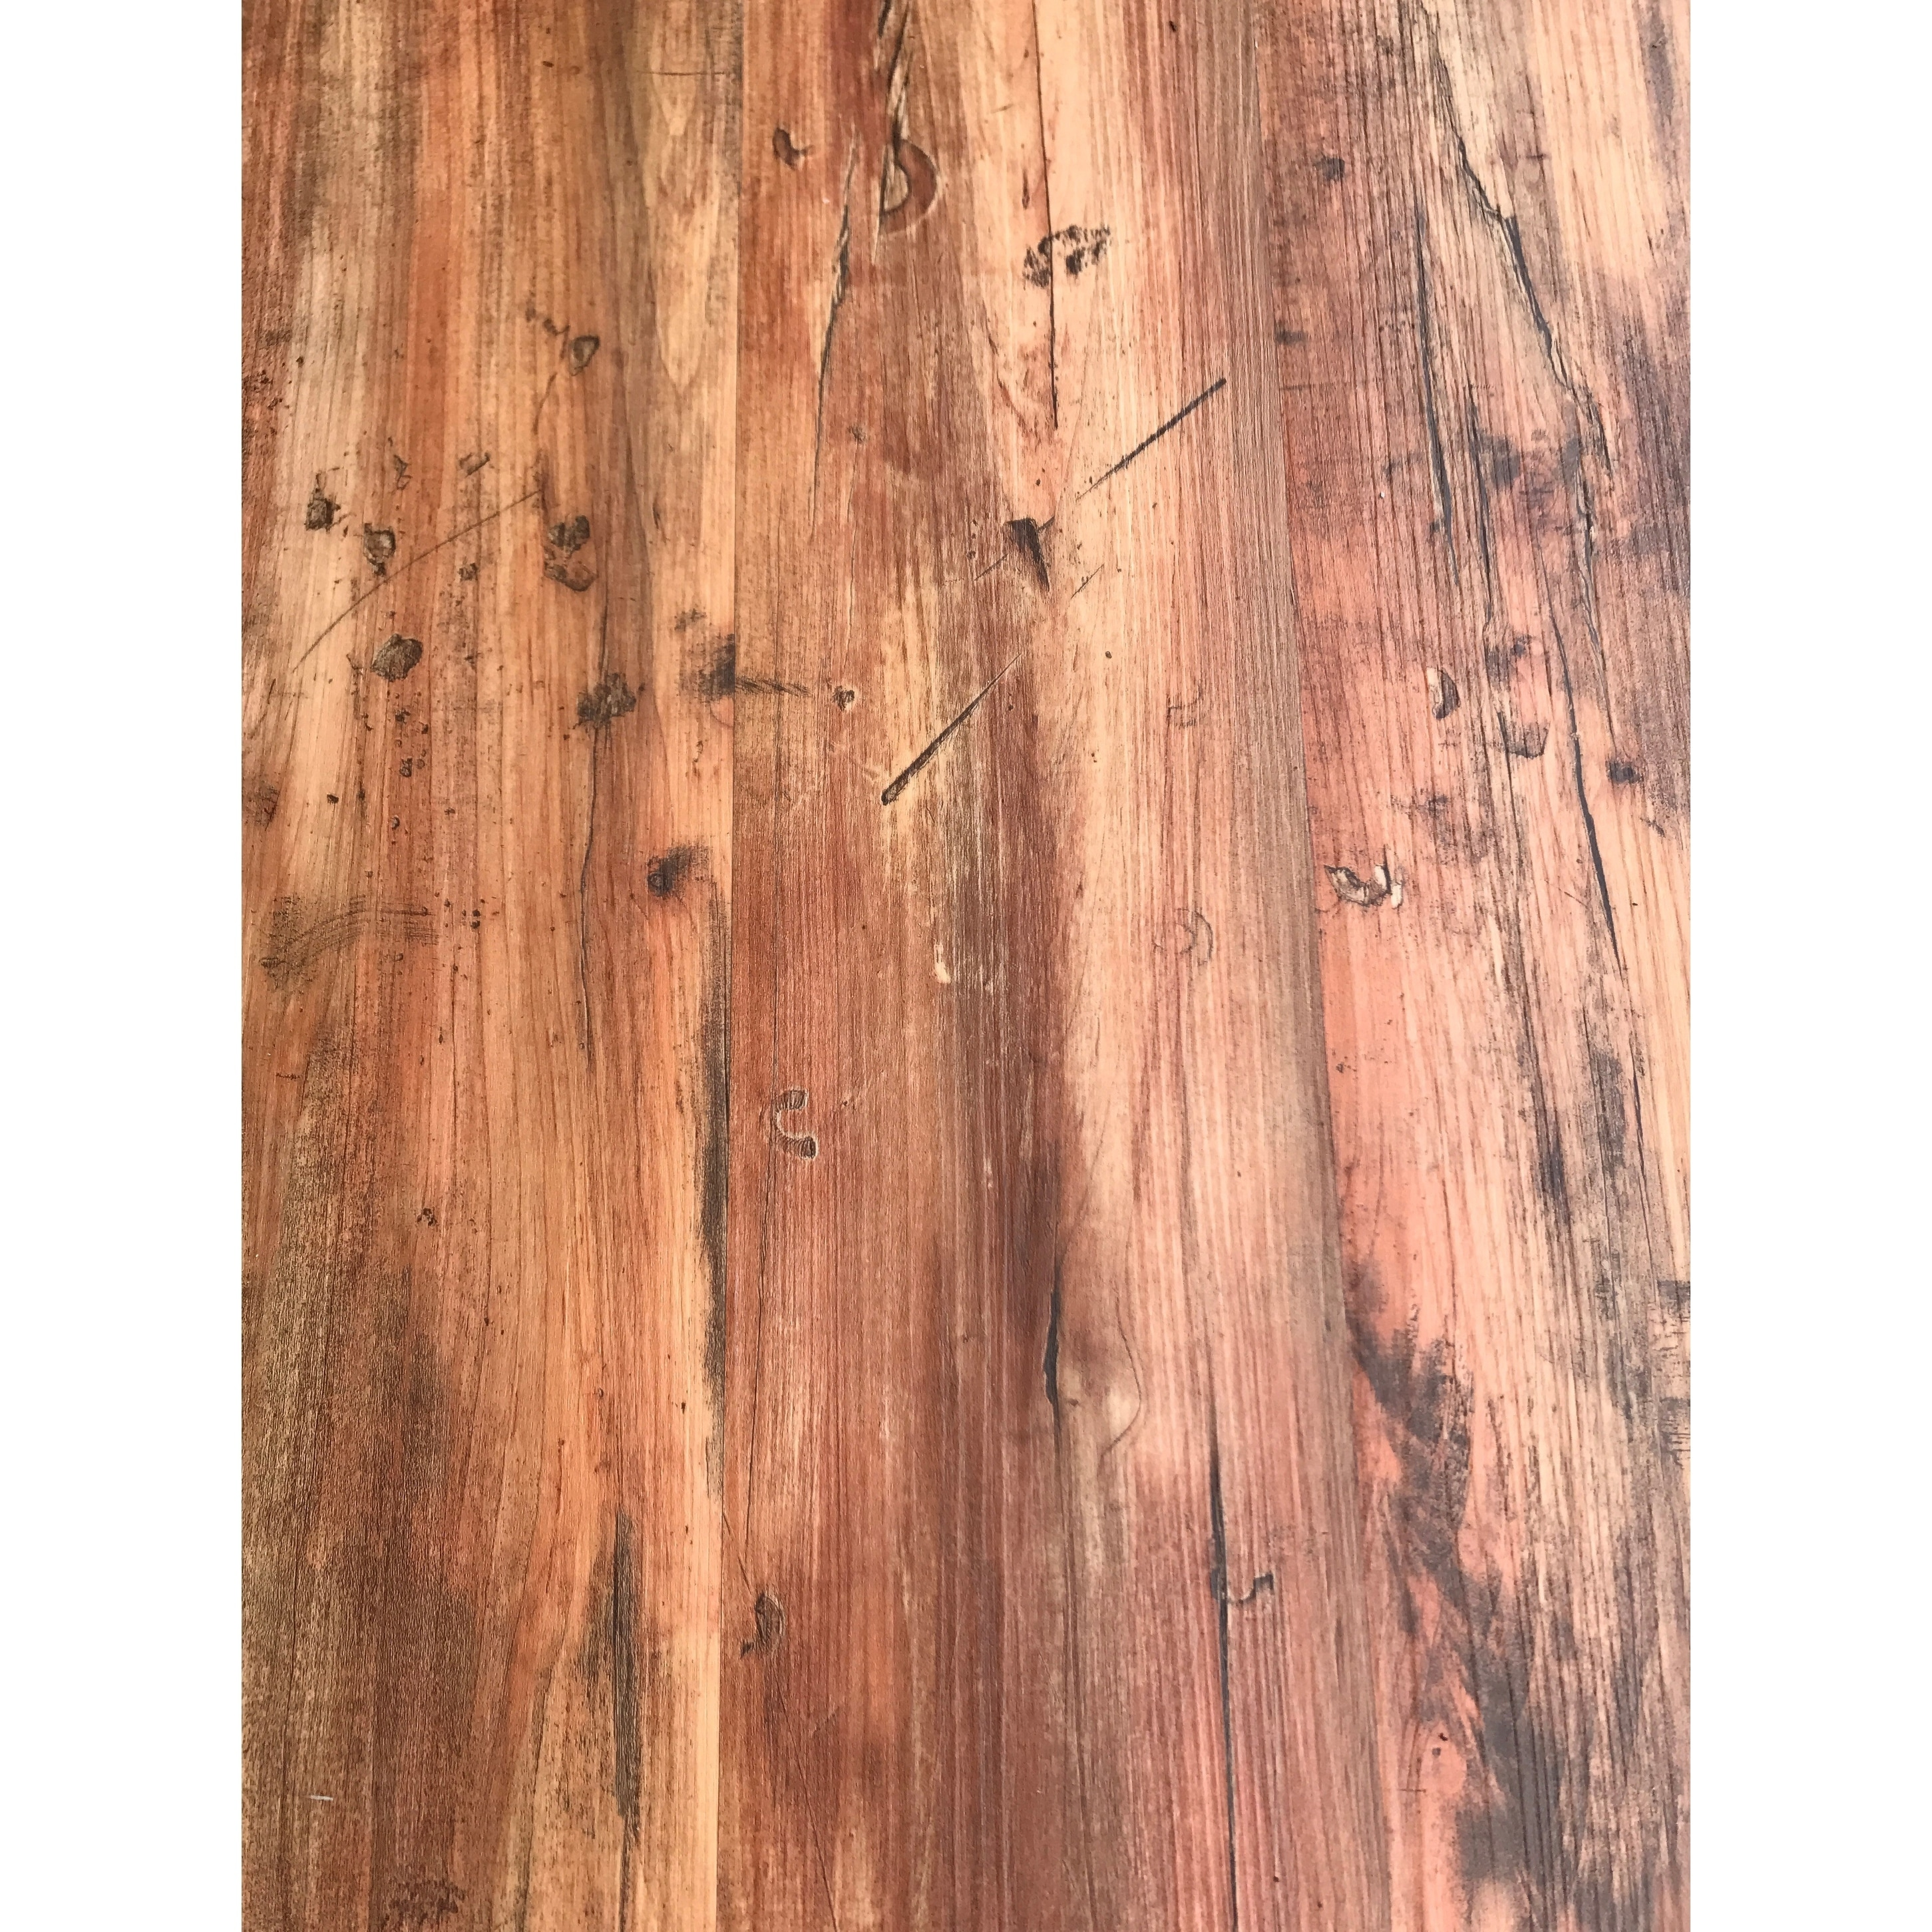 Vineyard 4 mm 26.53 sq. ft. Vinyl Plank Flooring (26.53 S...